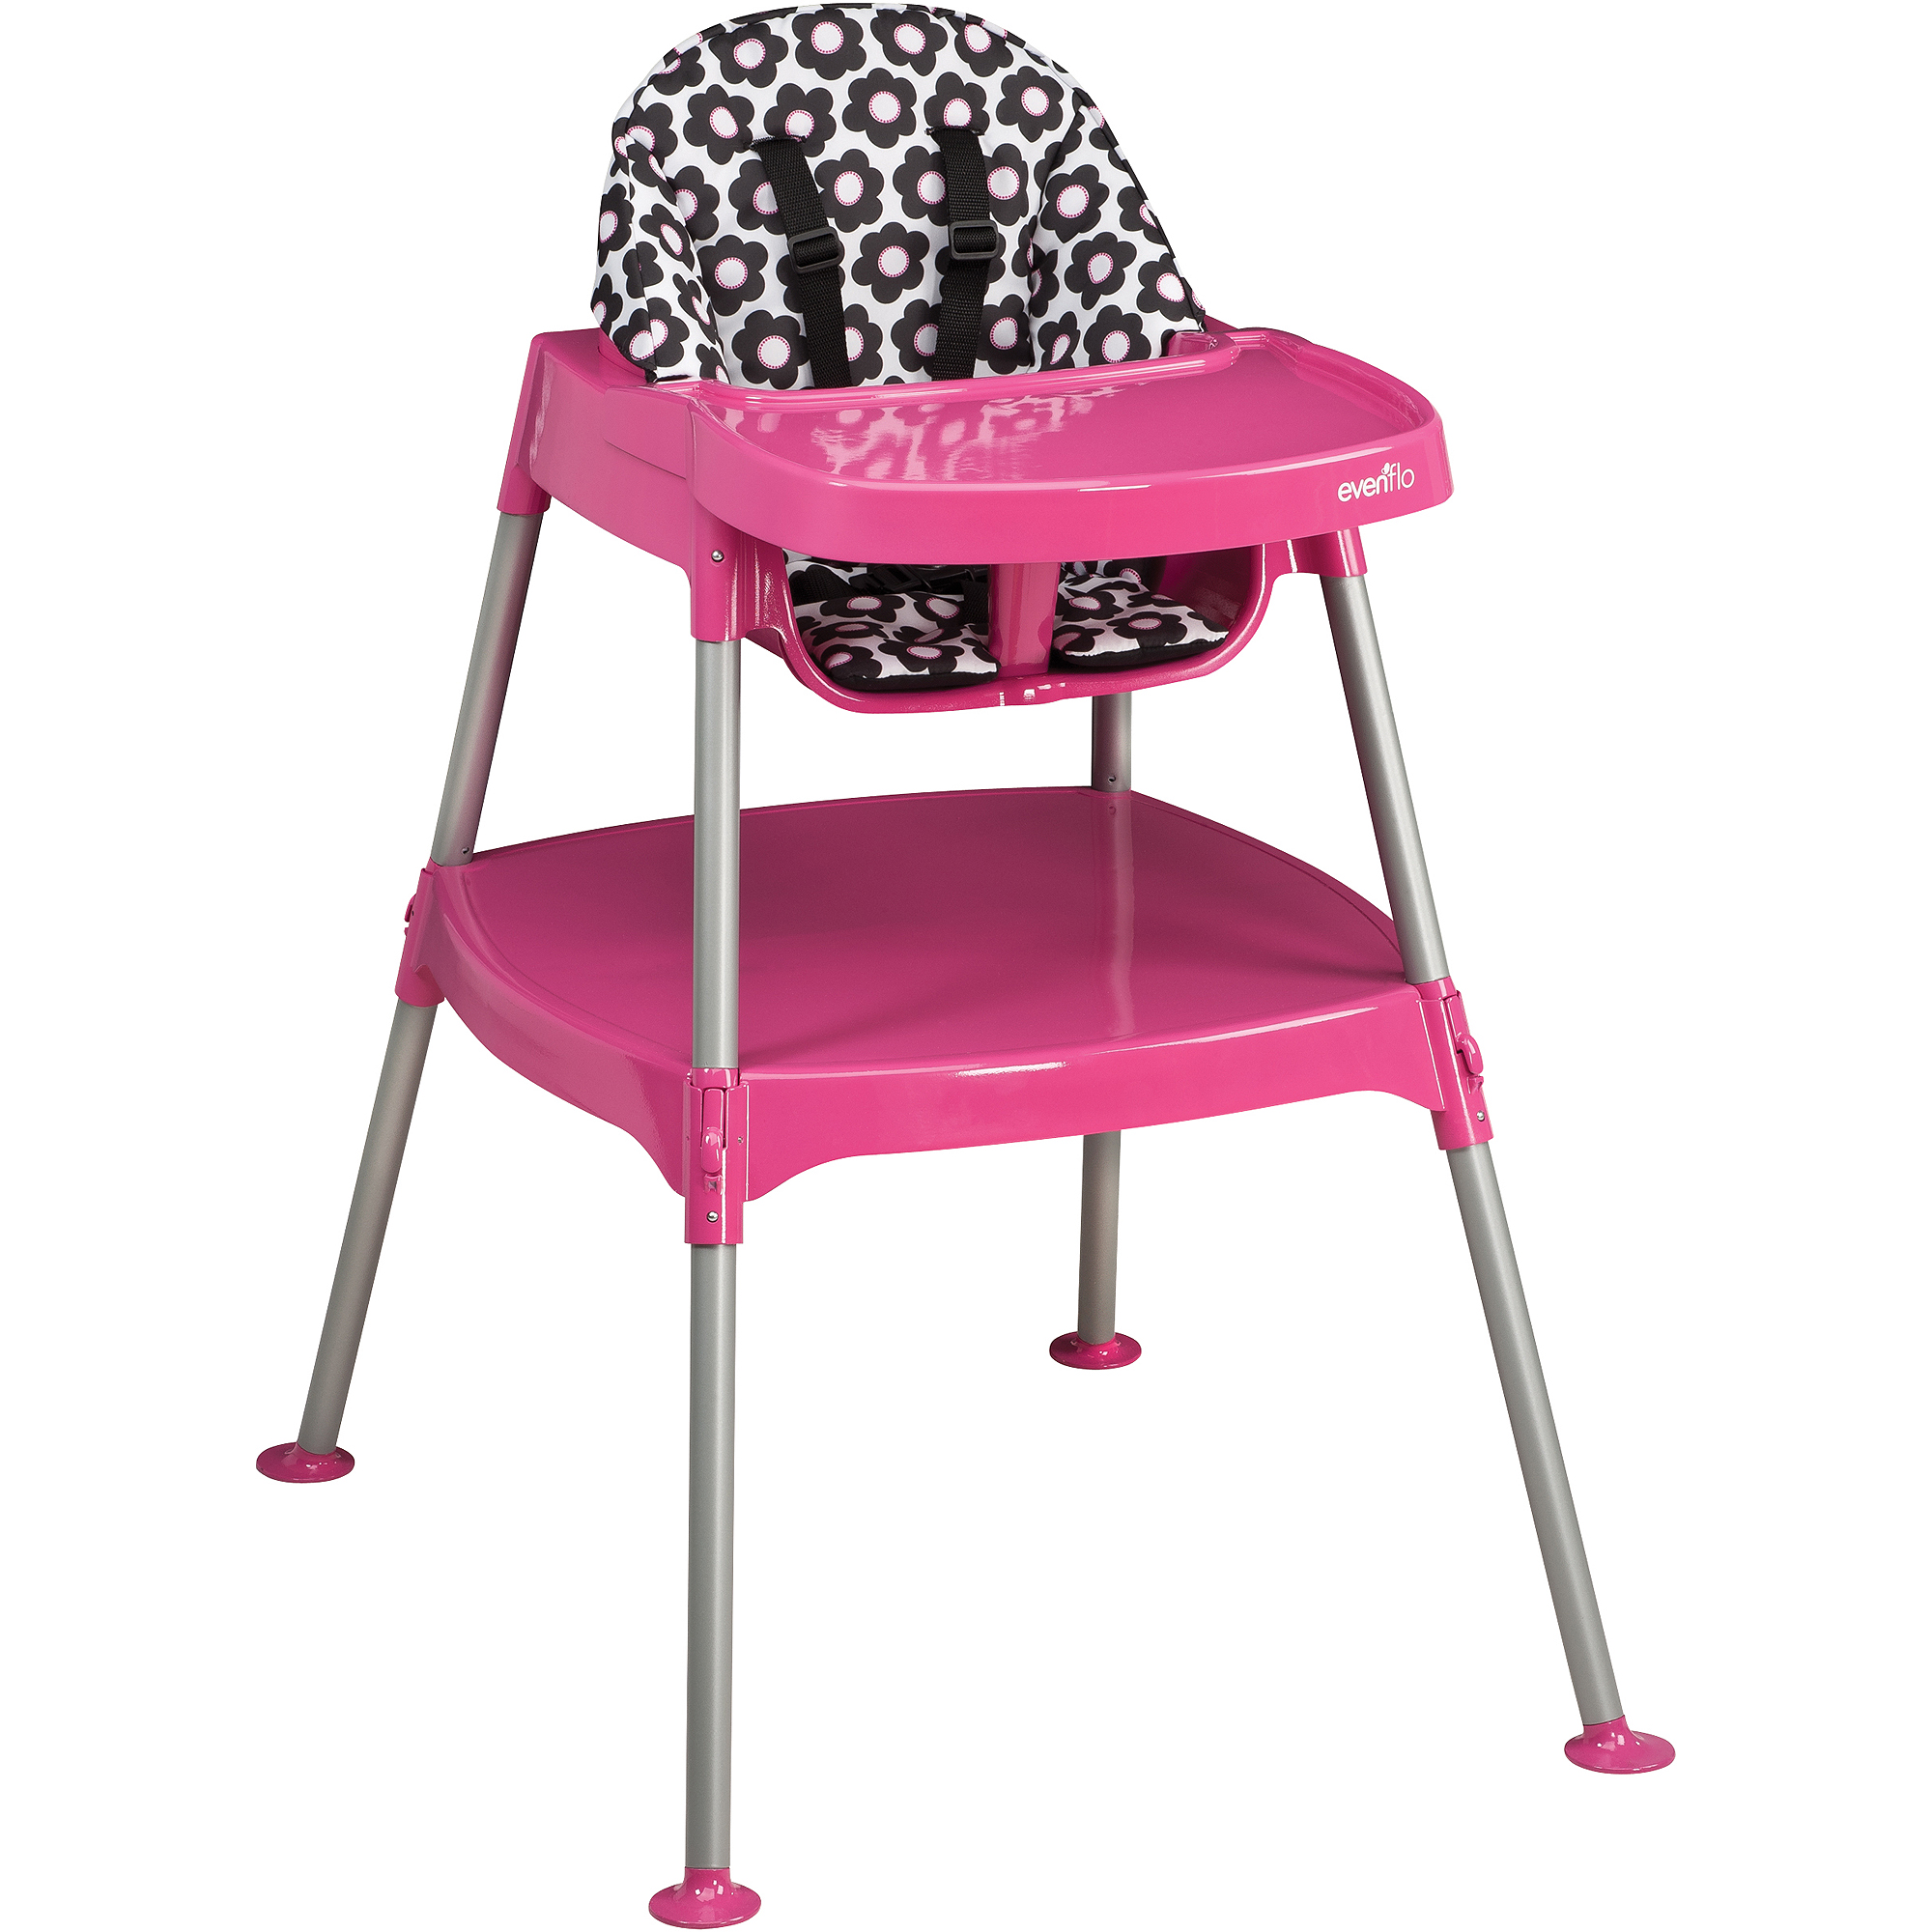 evenflo convertible high chair Evenflo Marianna Convertible 3 in 1 High Chair   Walmart.com evenflo convertible high chair